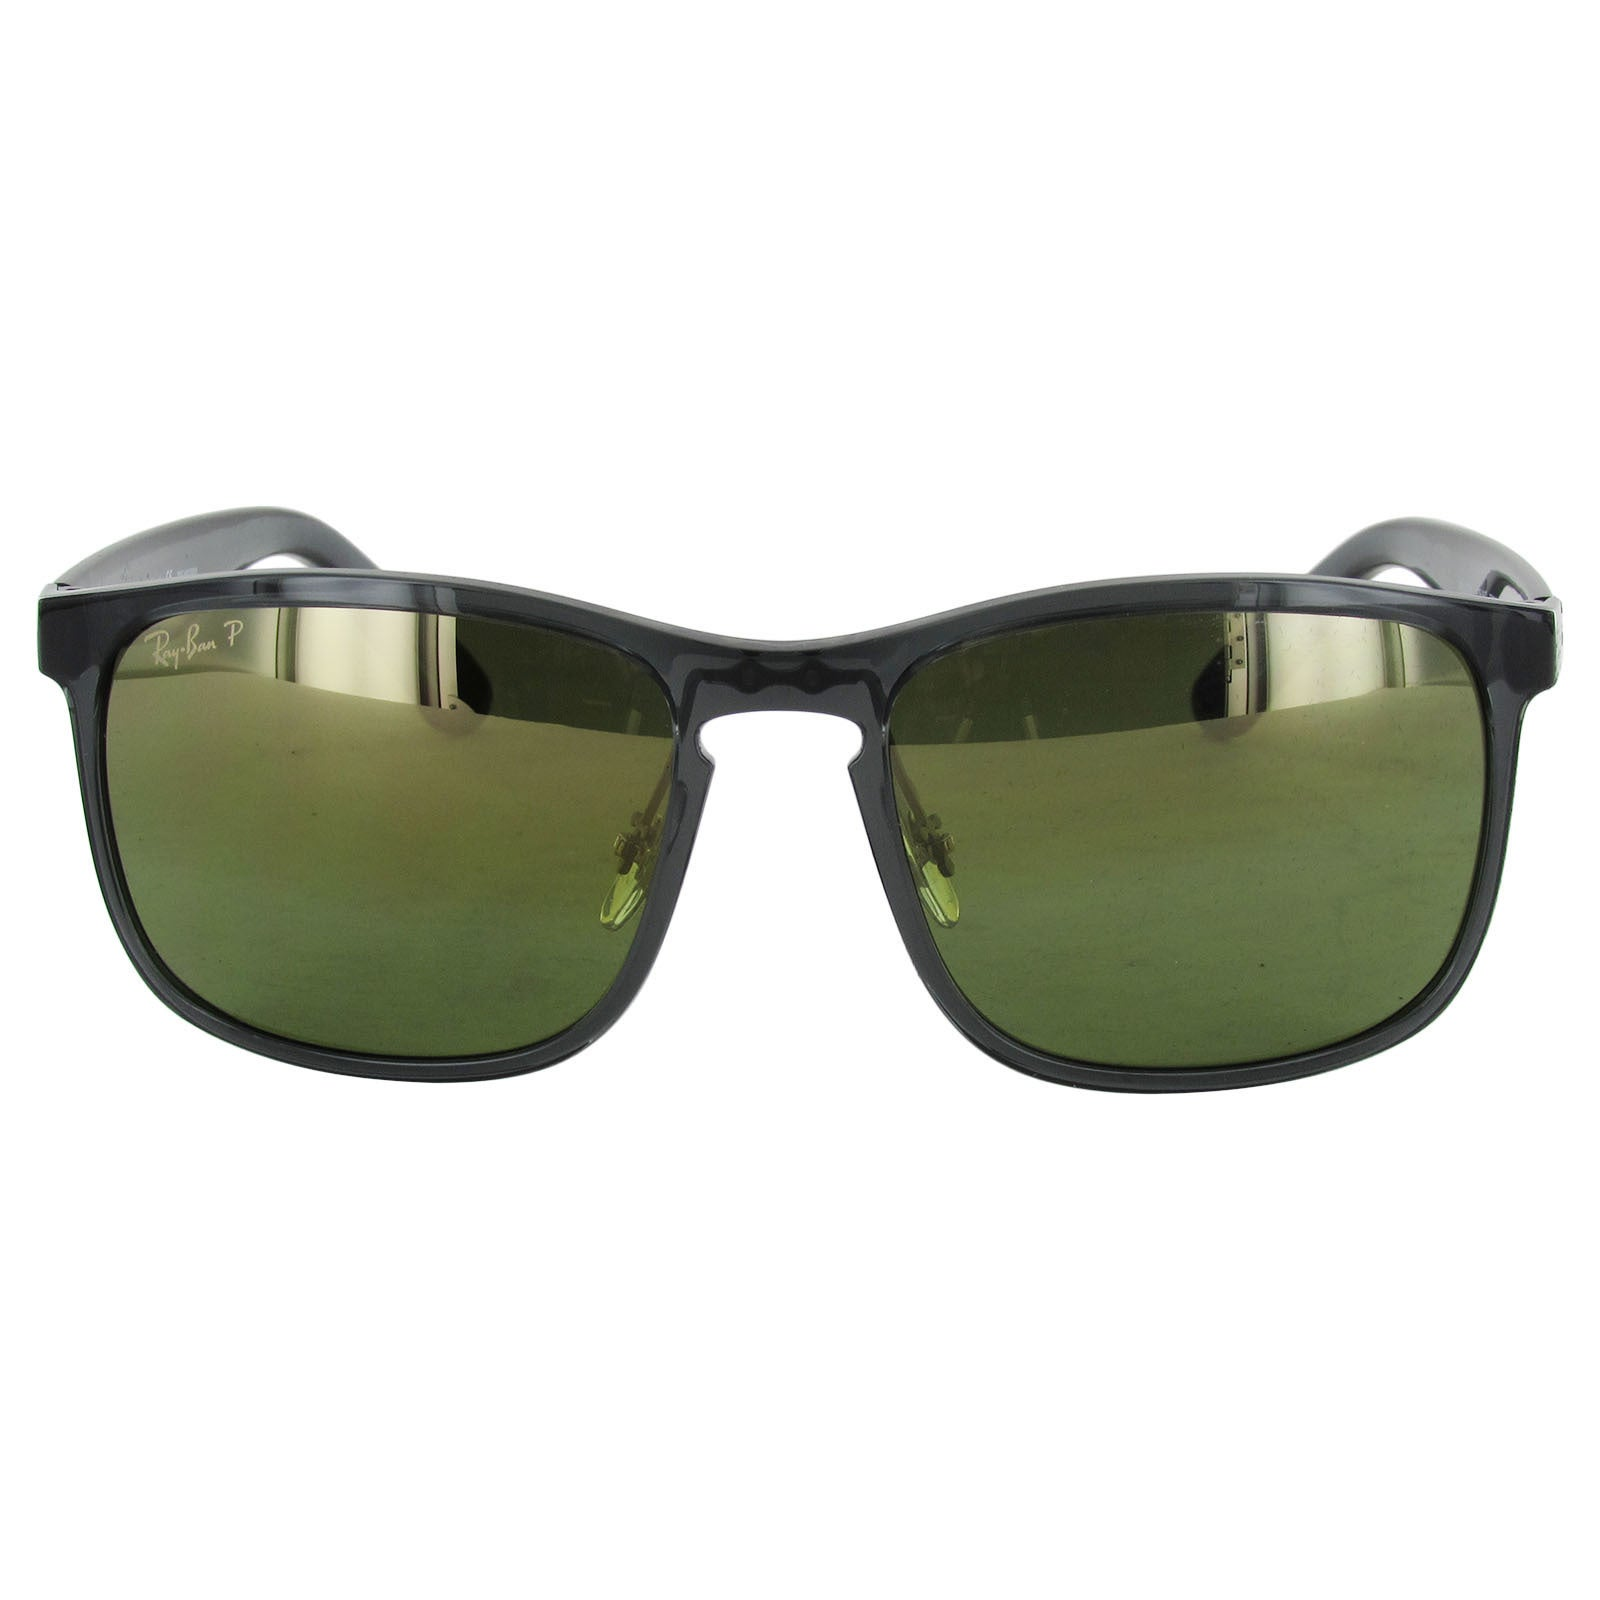 528caaca99 Shop Ray Ban Chromance RB4264 Grey Frame Green Polarized Lens Sunglasses -  Free Shipping Today - Overstock - 16288333